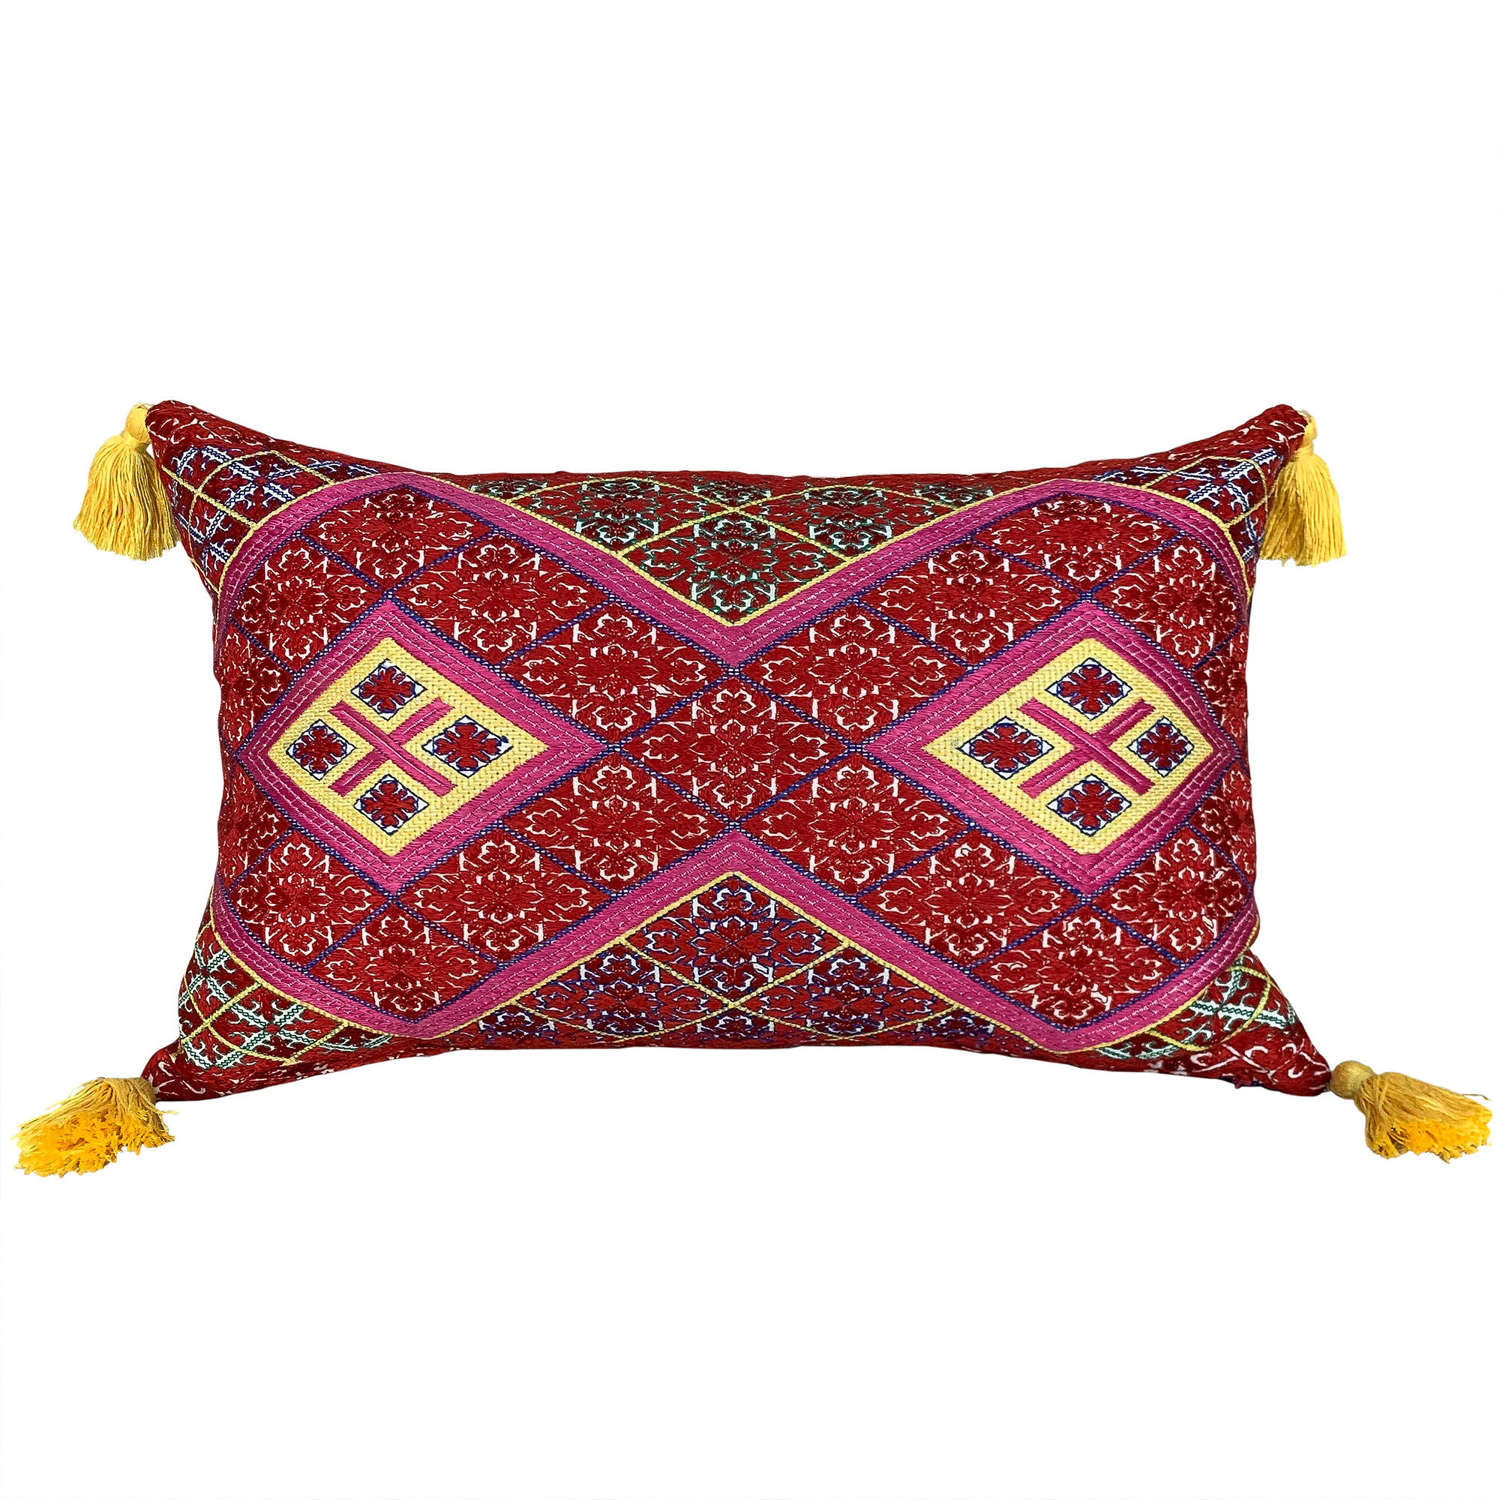 Swat cushion with yellow tassels